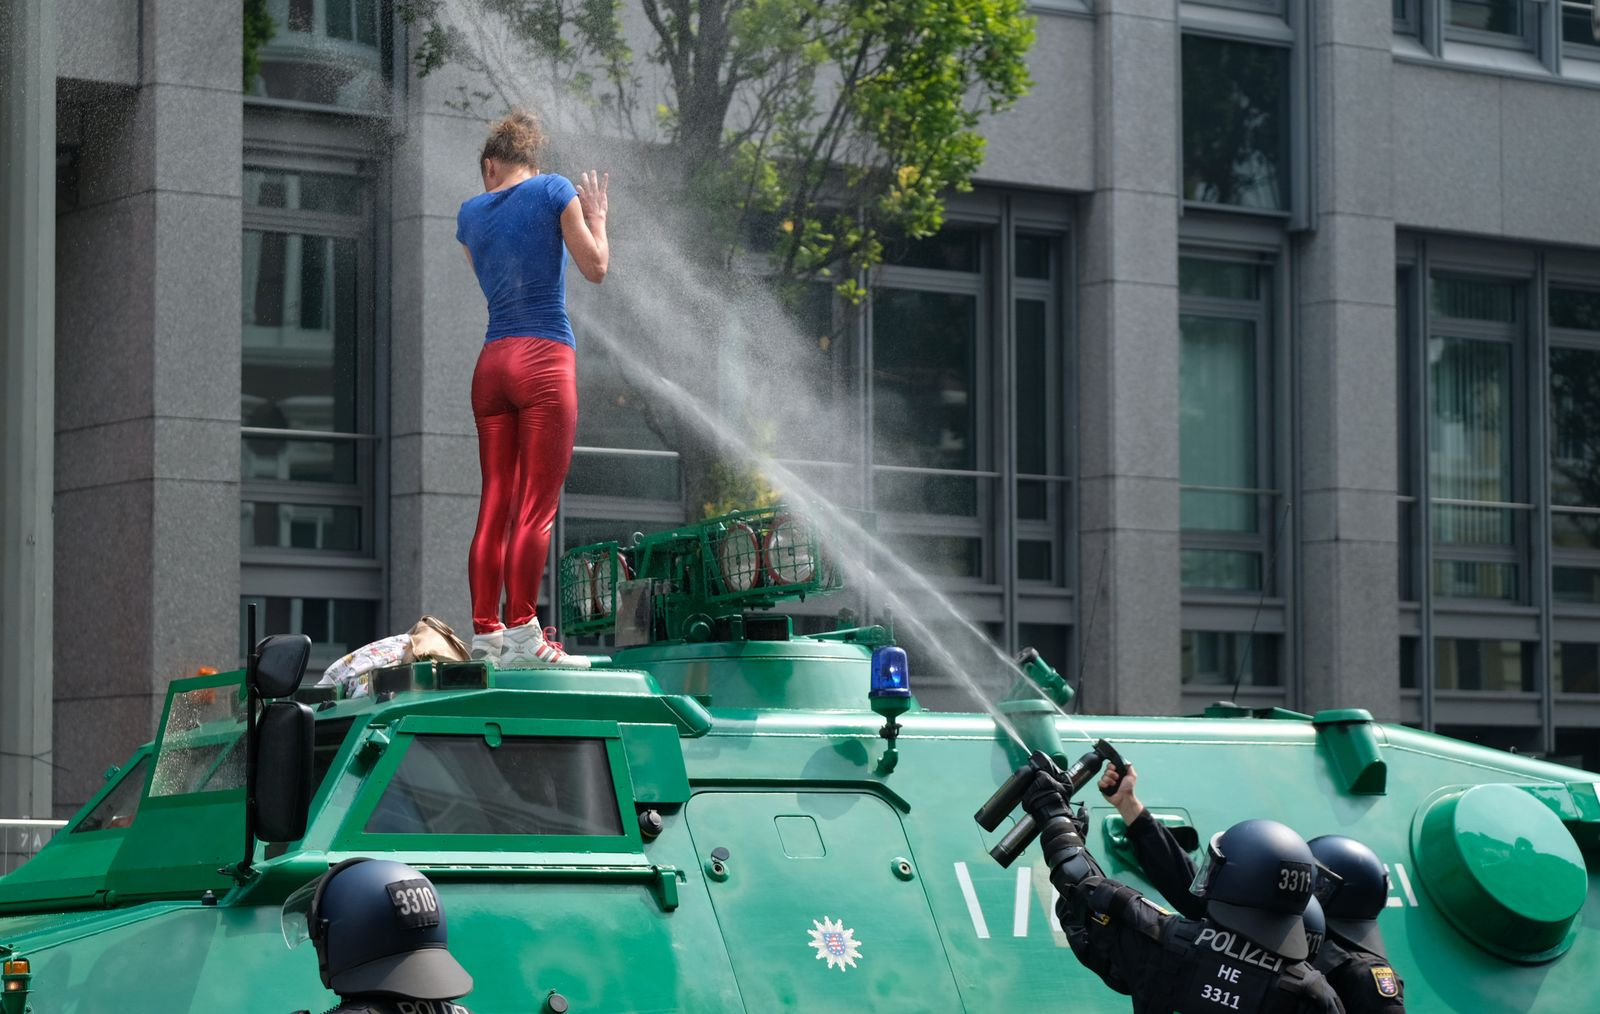 G20 Gipfel - Demonstrationen